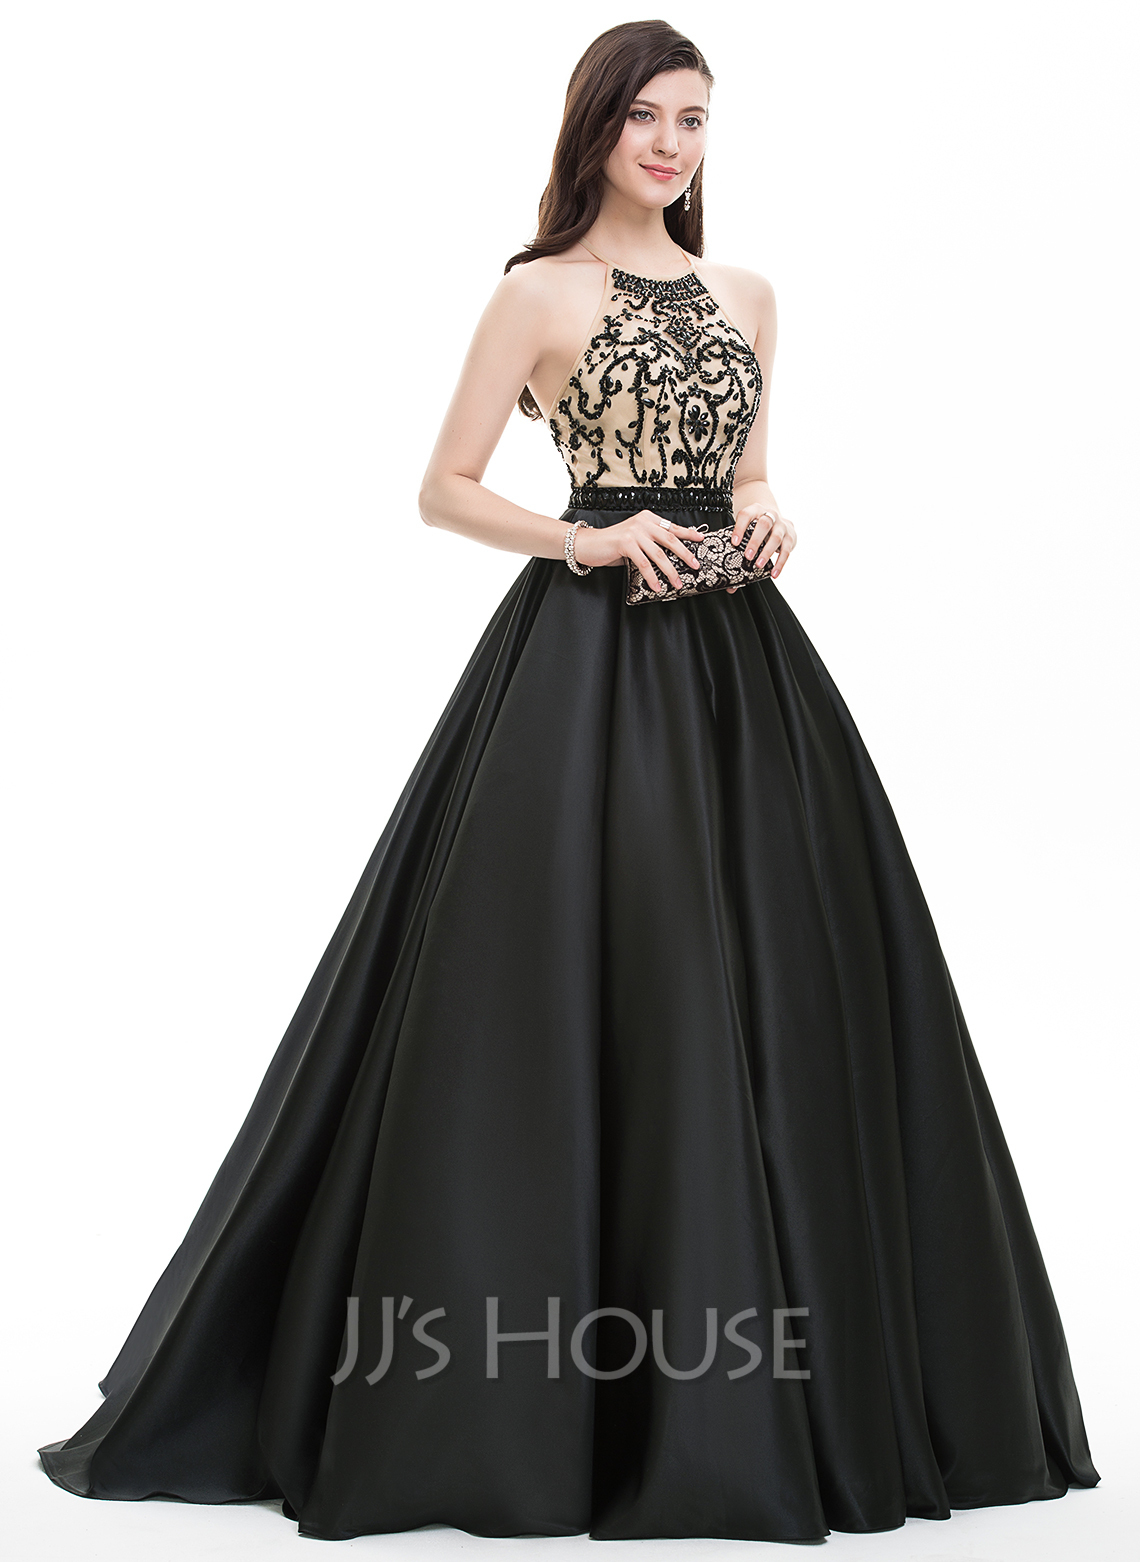 2d7be14cdf Ball-Gown Scoop Neck Sweep Train Satin Prom Dresses With Beading Sequins.  Loading zoom